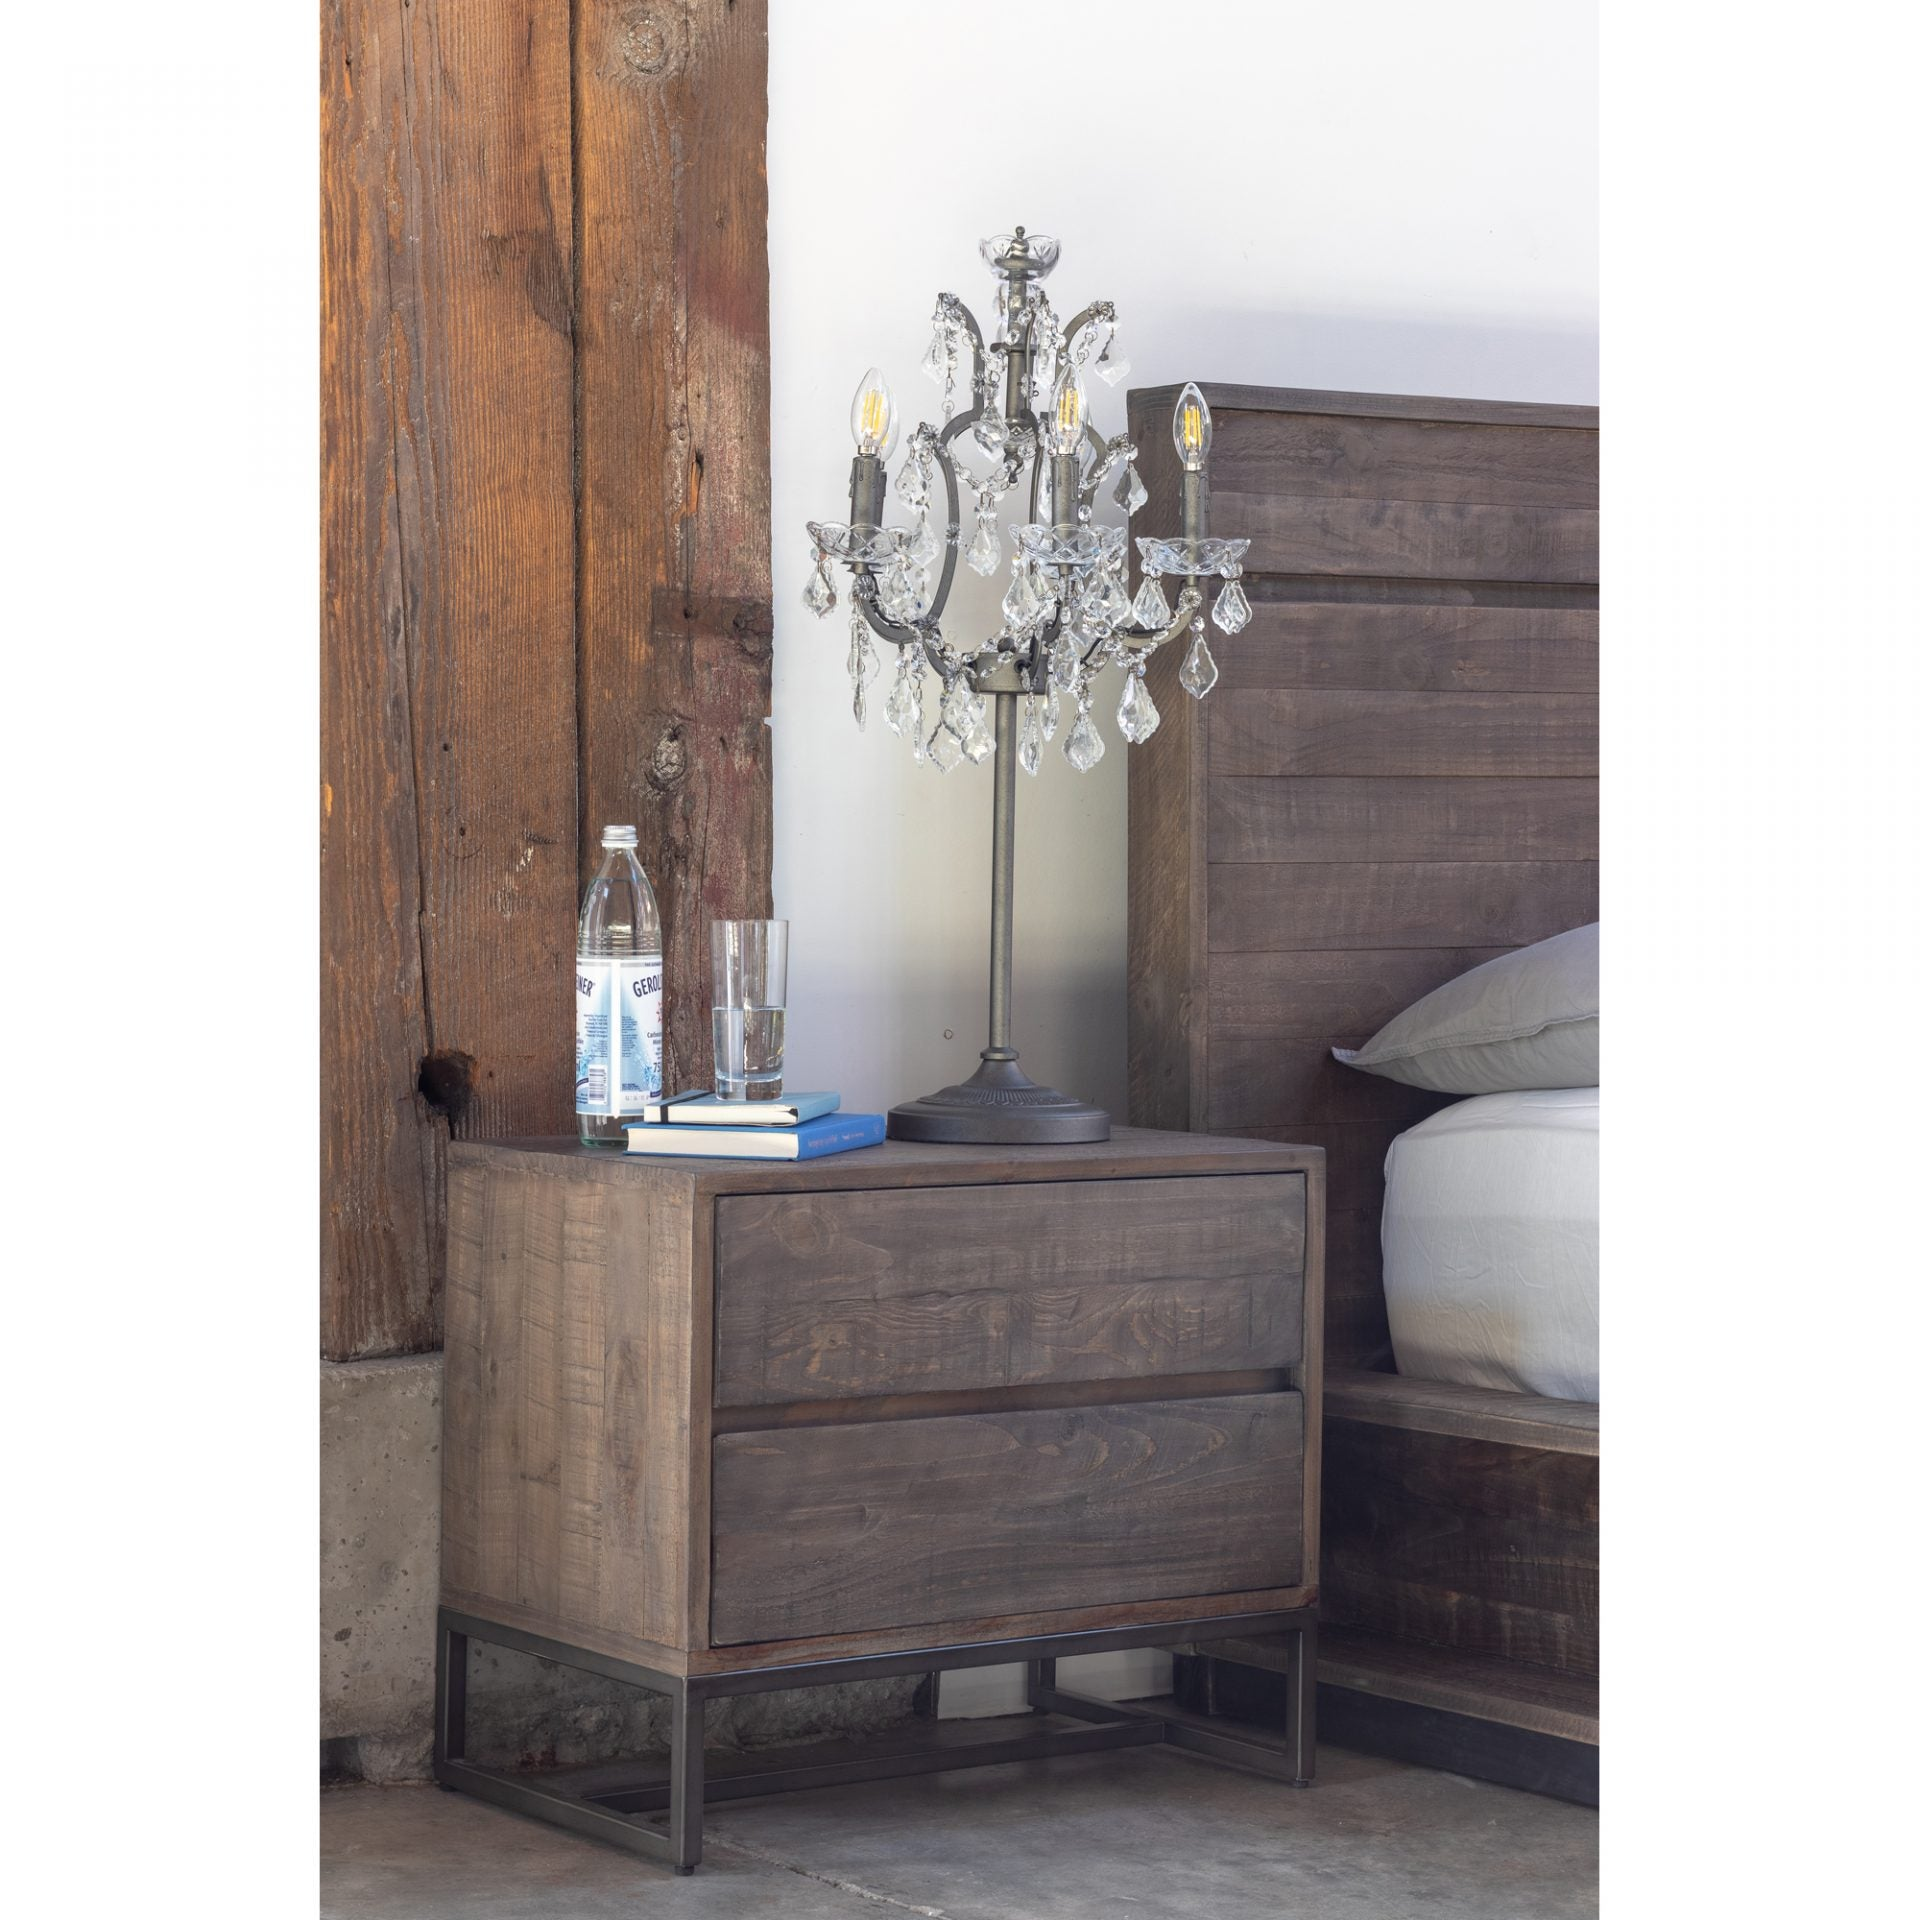 Elena 2-Drawer Nightstand